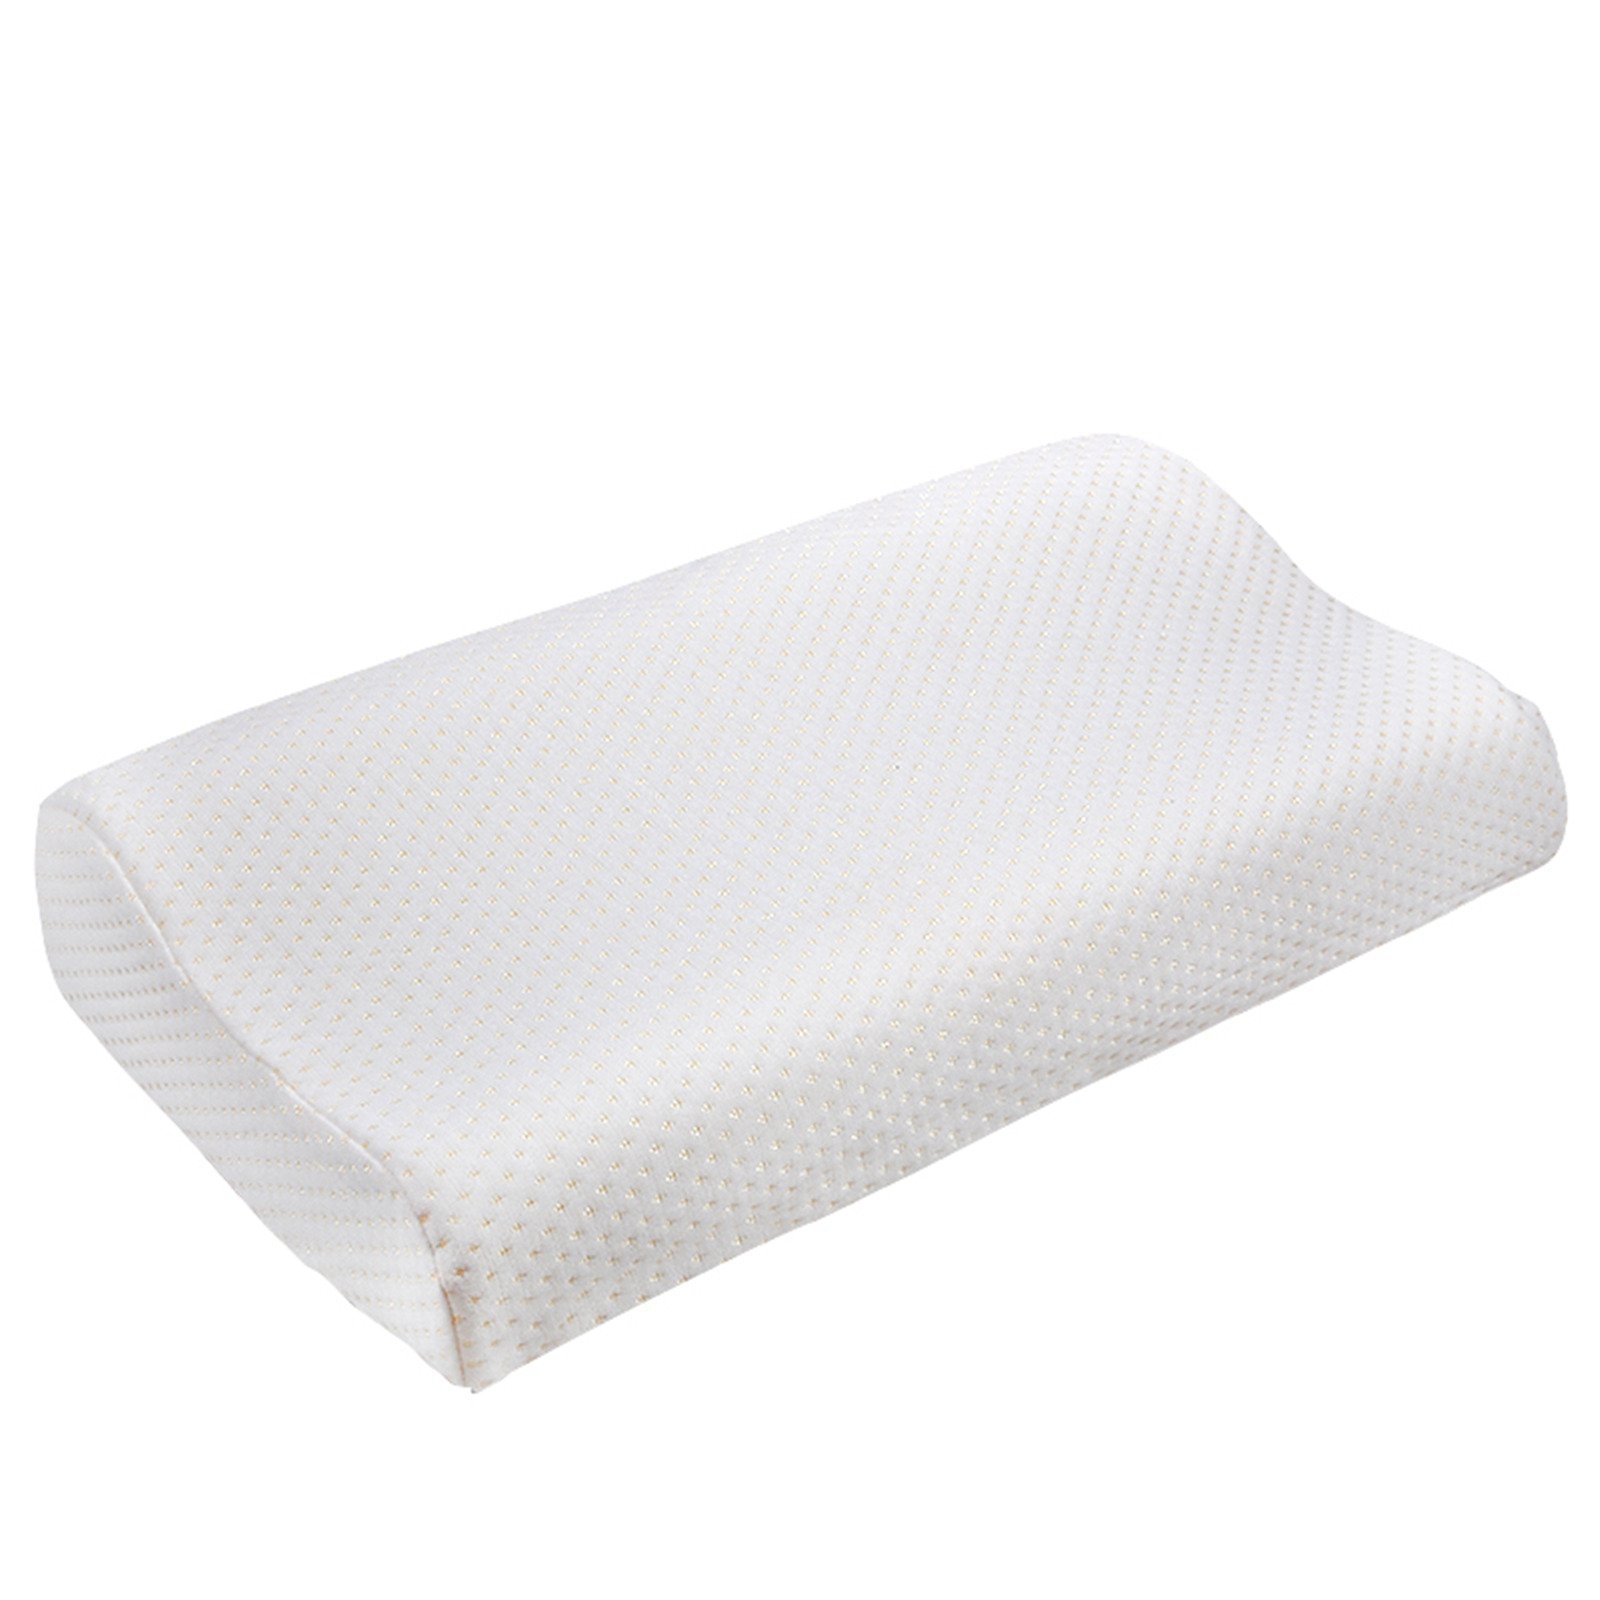 Denshine 30x50cm Sleep Slow Rebound Memory Foam Pillow Cervical Health Care 1pc (White)